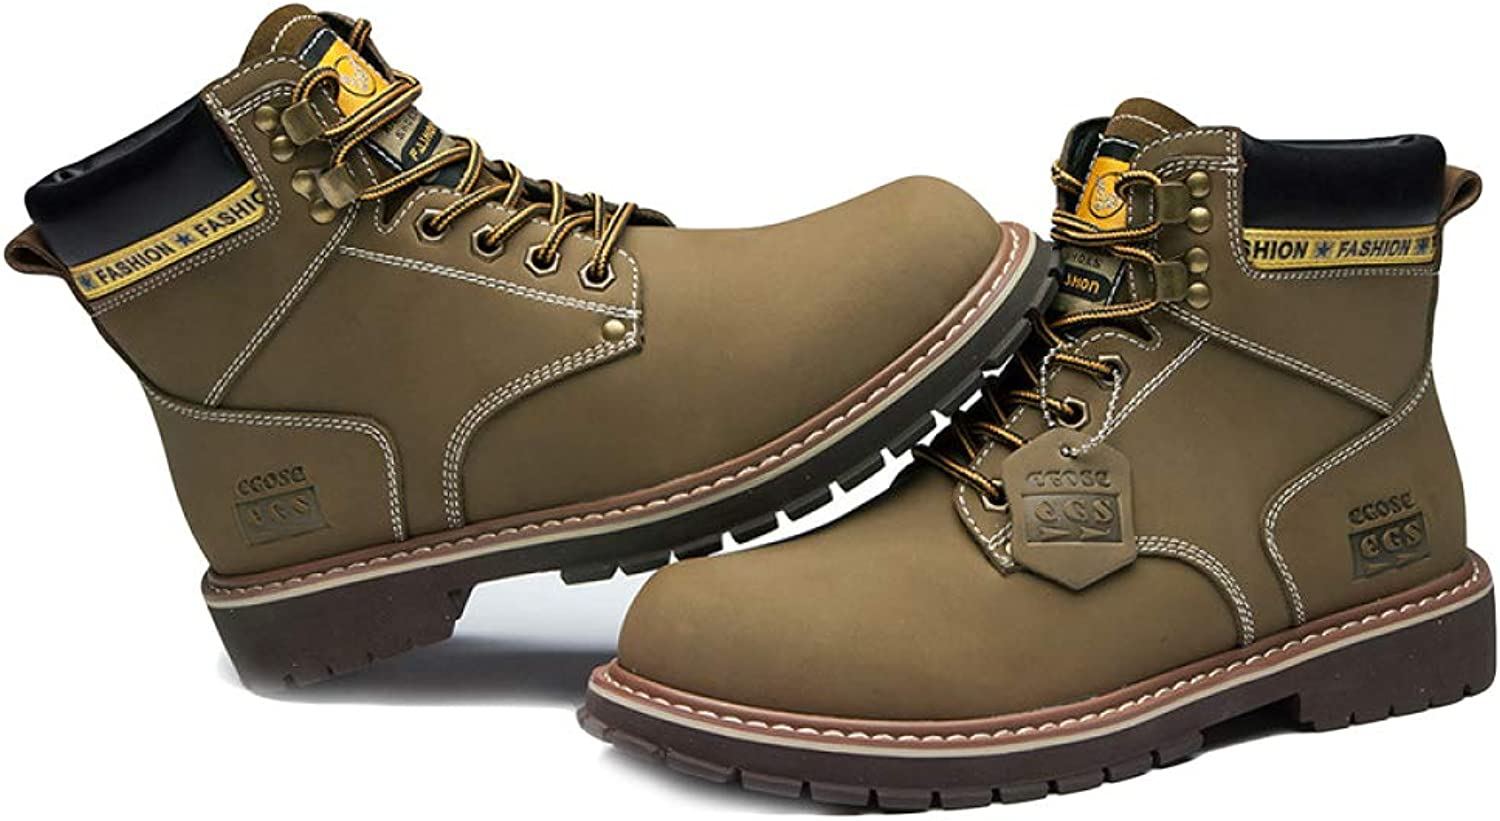 Boots Men's Casual Walking Martin Boots High Help Round Head Tactical Boots Thicken Anti-Skiing Boots Chukka Work Boots